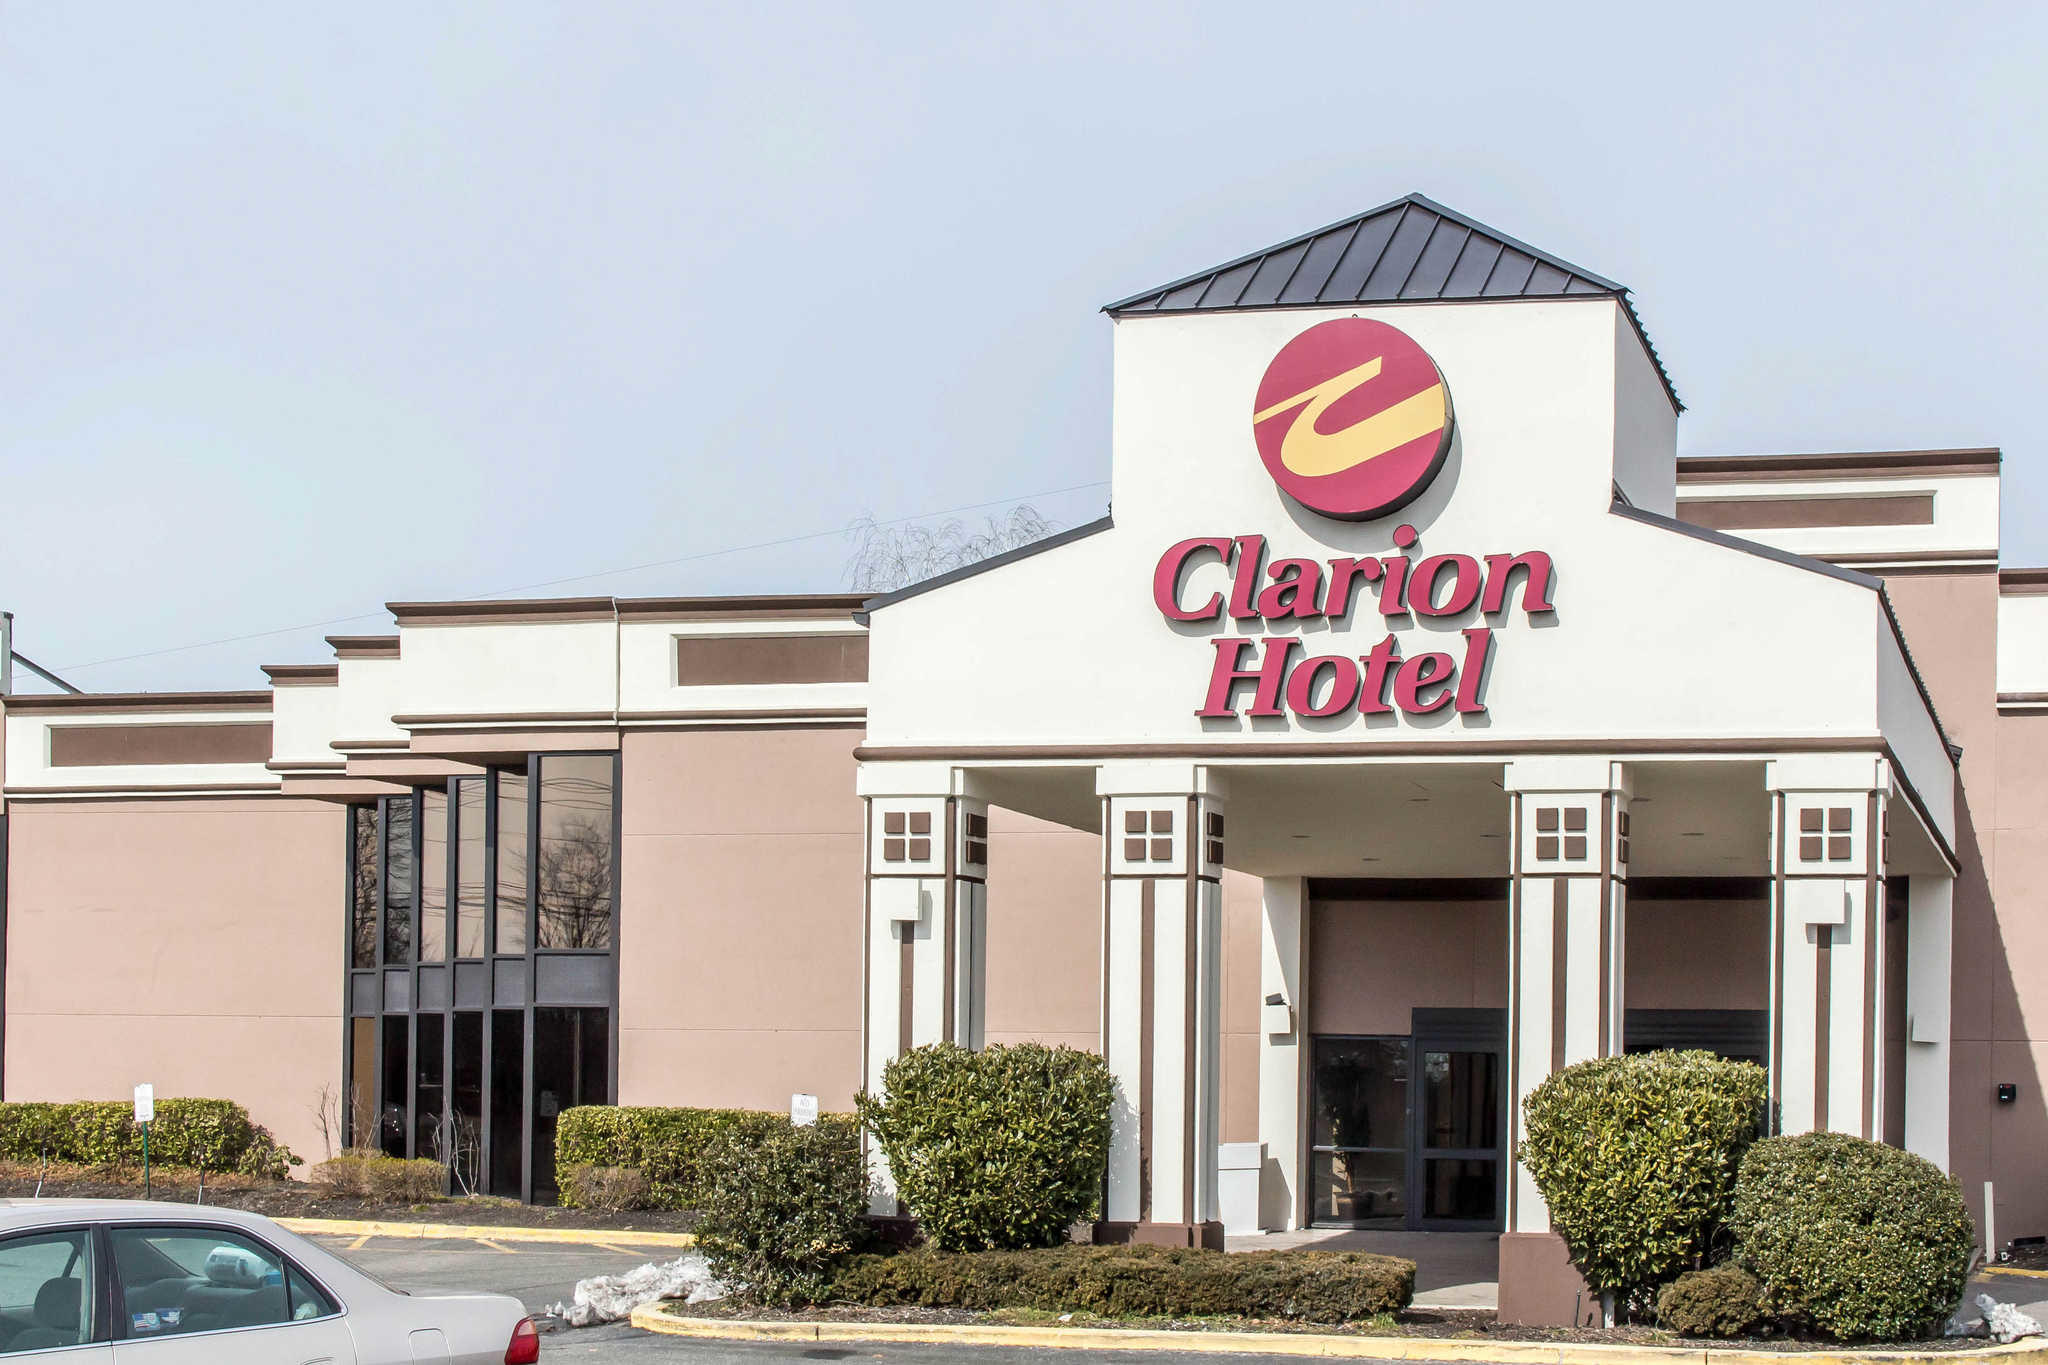 Clarion Hotel & Conference Center image 2